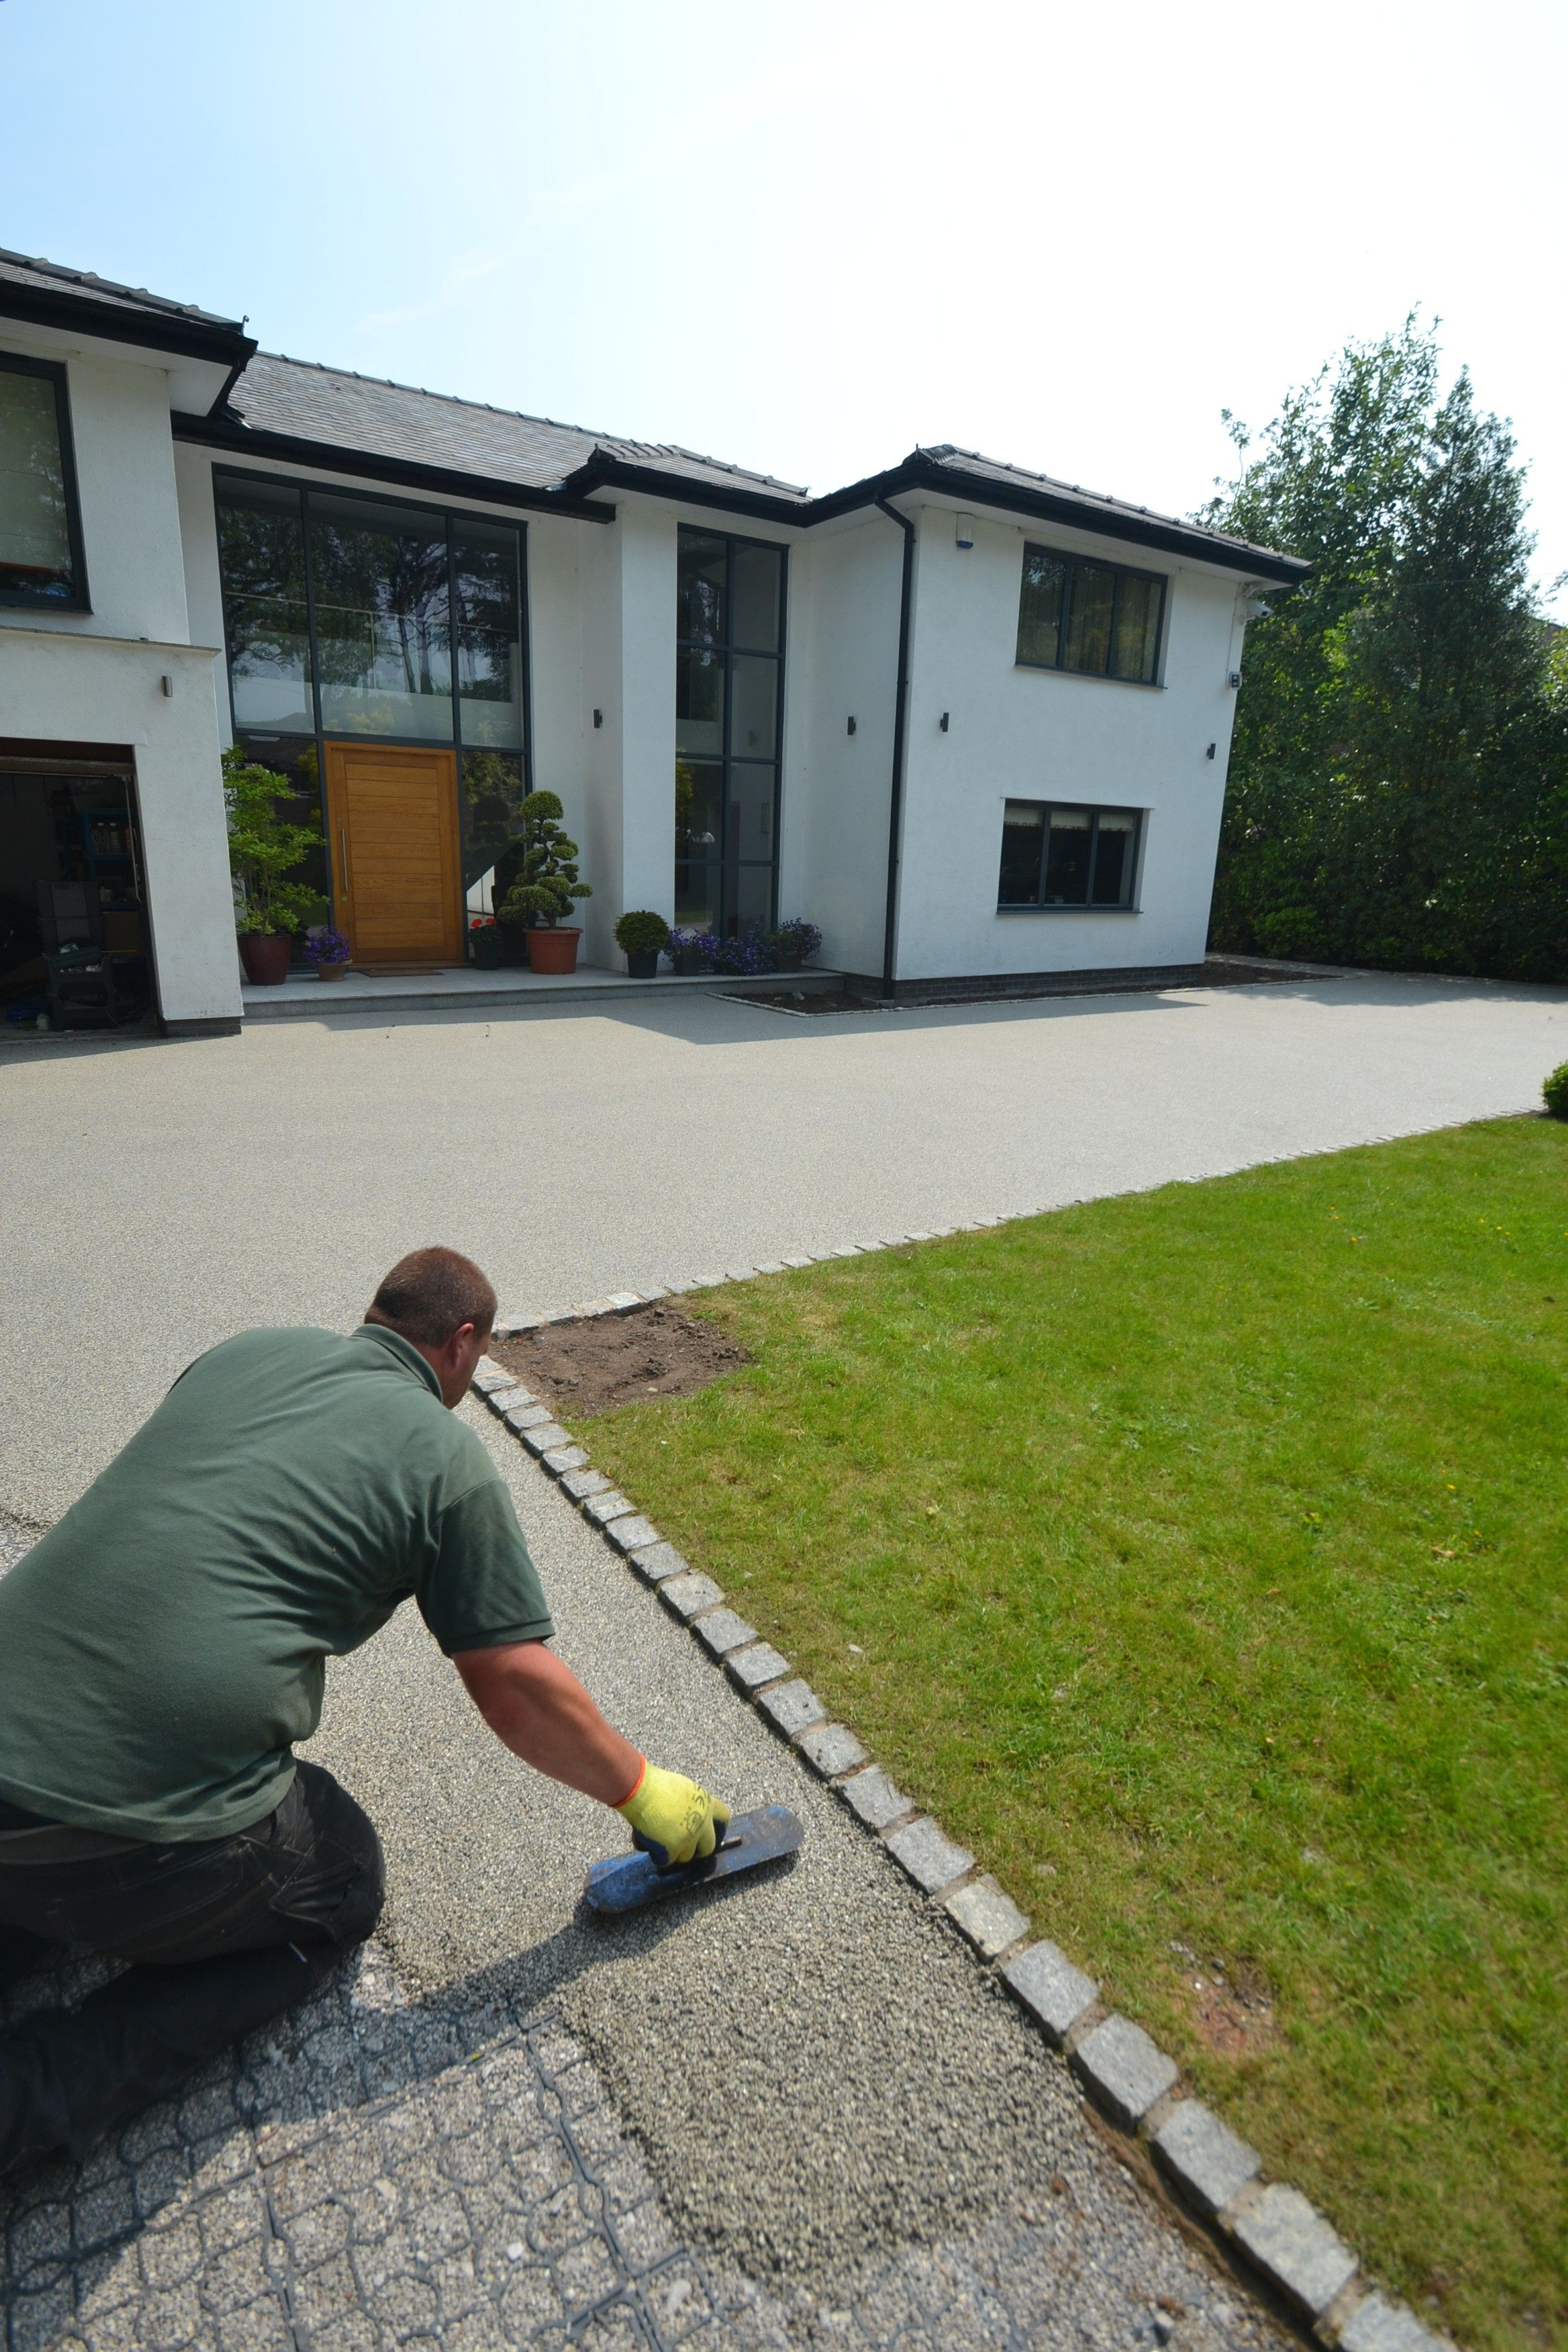 Garden And Driveway Specialists See Our Many Show Projects On The Website Featuring Driveways Cheshire Including Resin Bound Gravel As